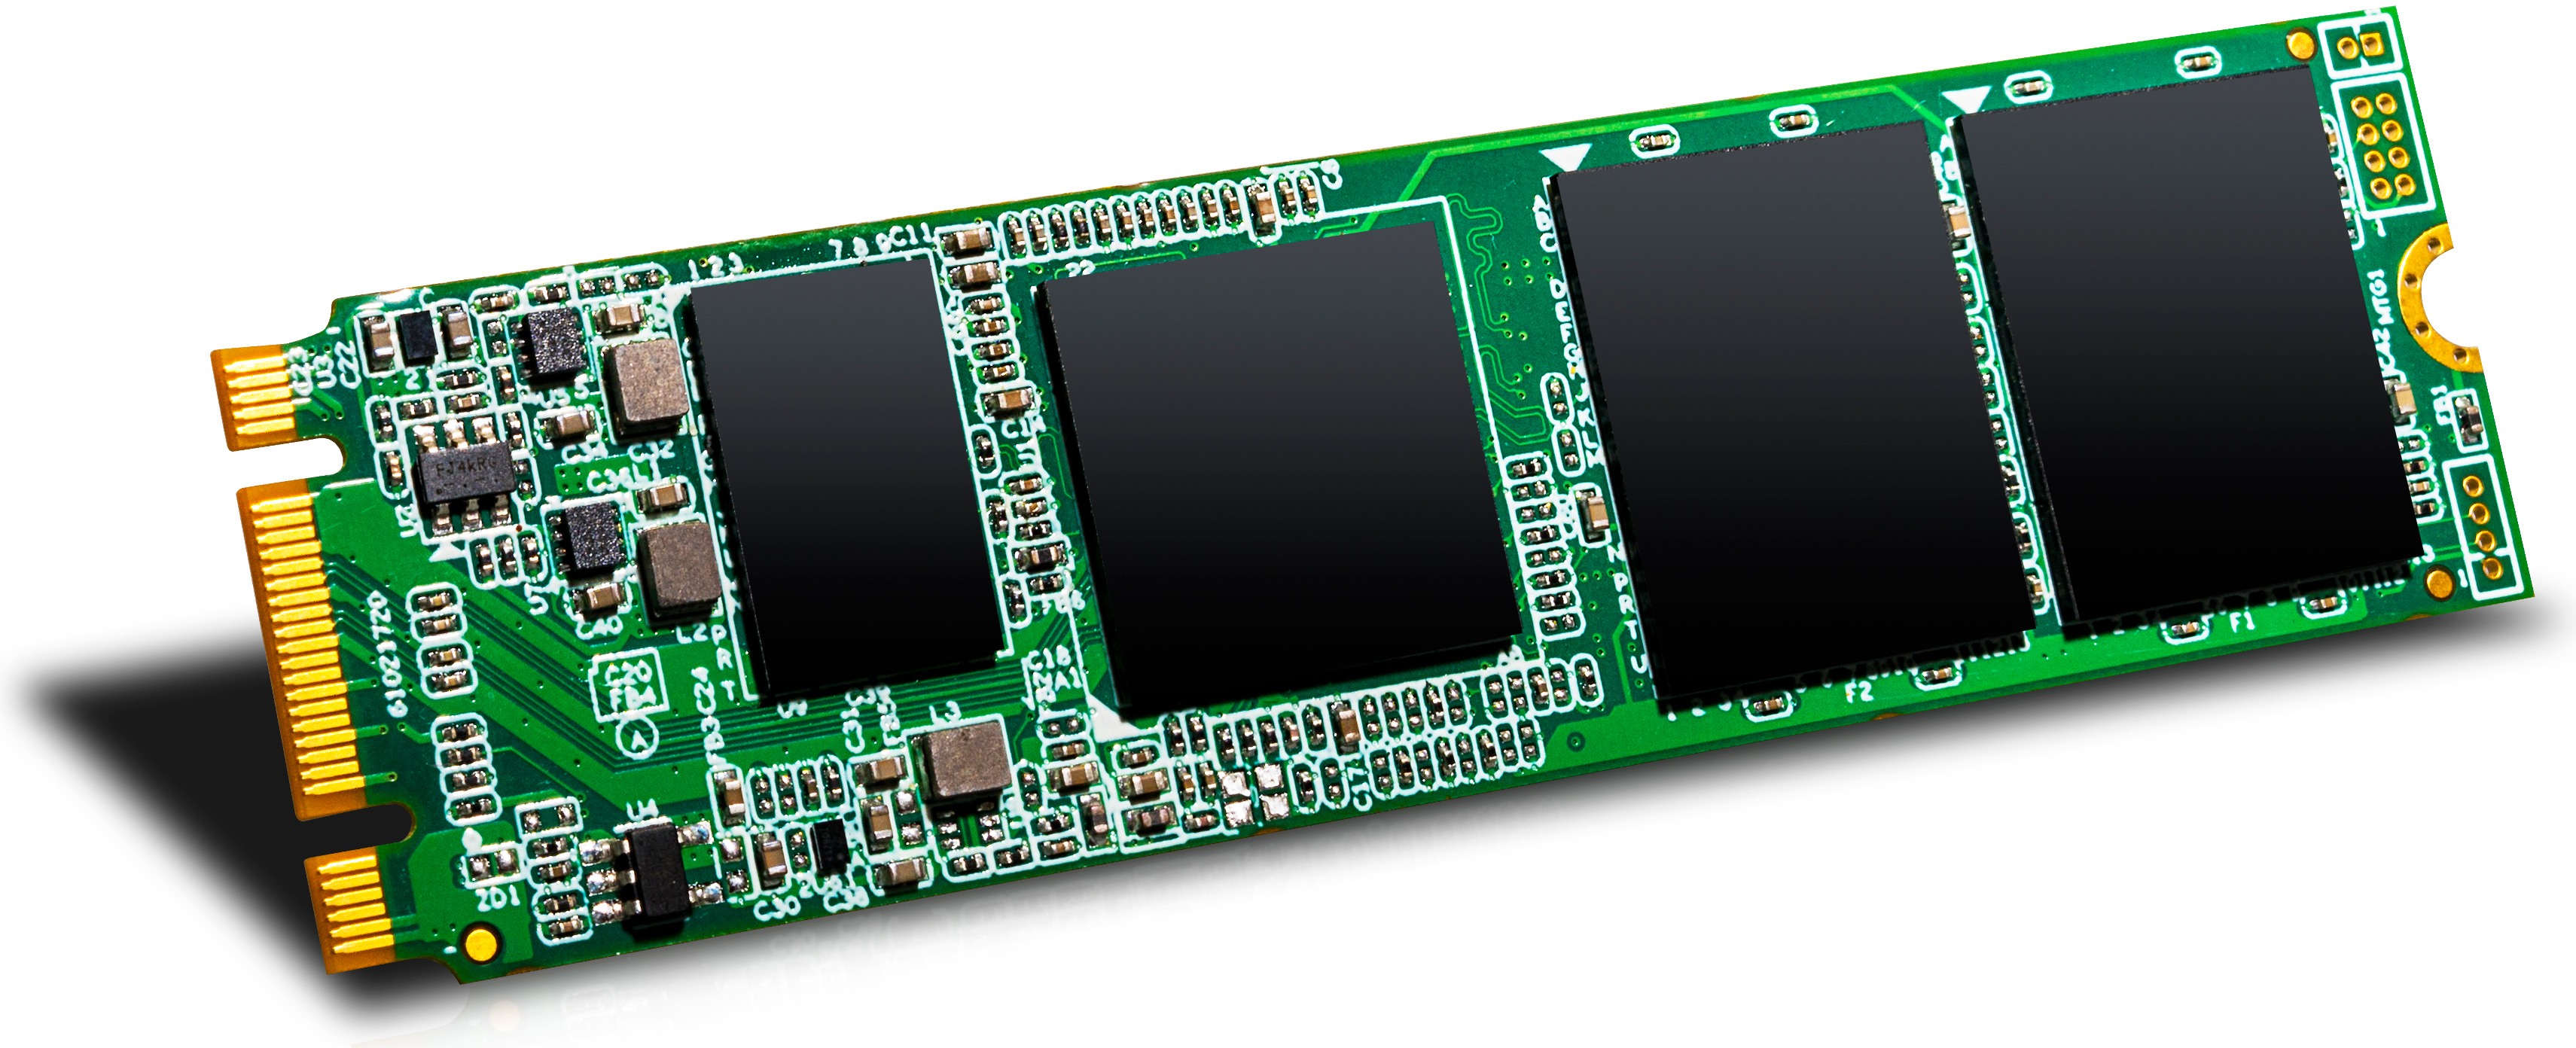 ADATA Introduces Premier SP550 SSDs in M.2 Form-Factor